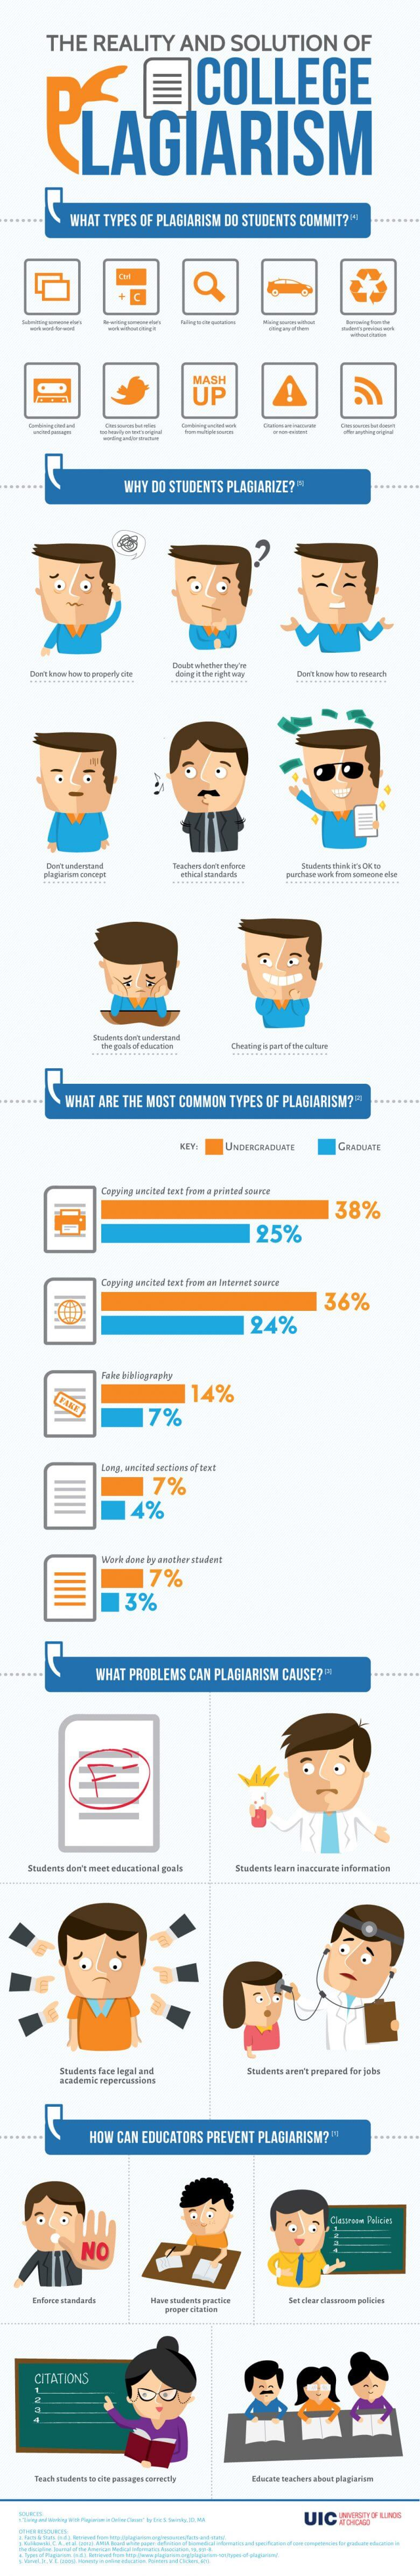 Infograph on the reality and solution of college plagiarism